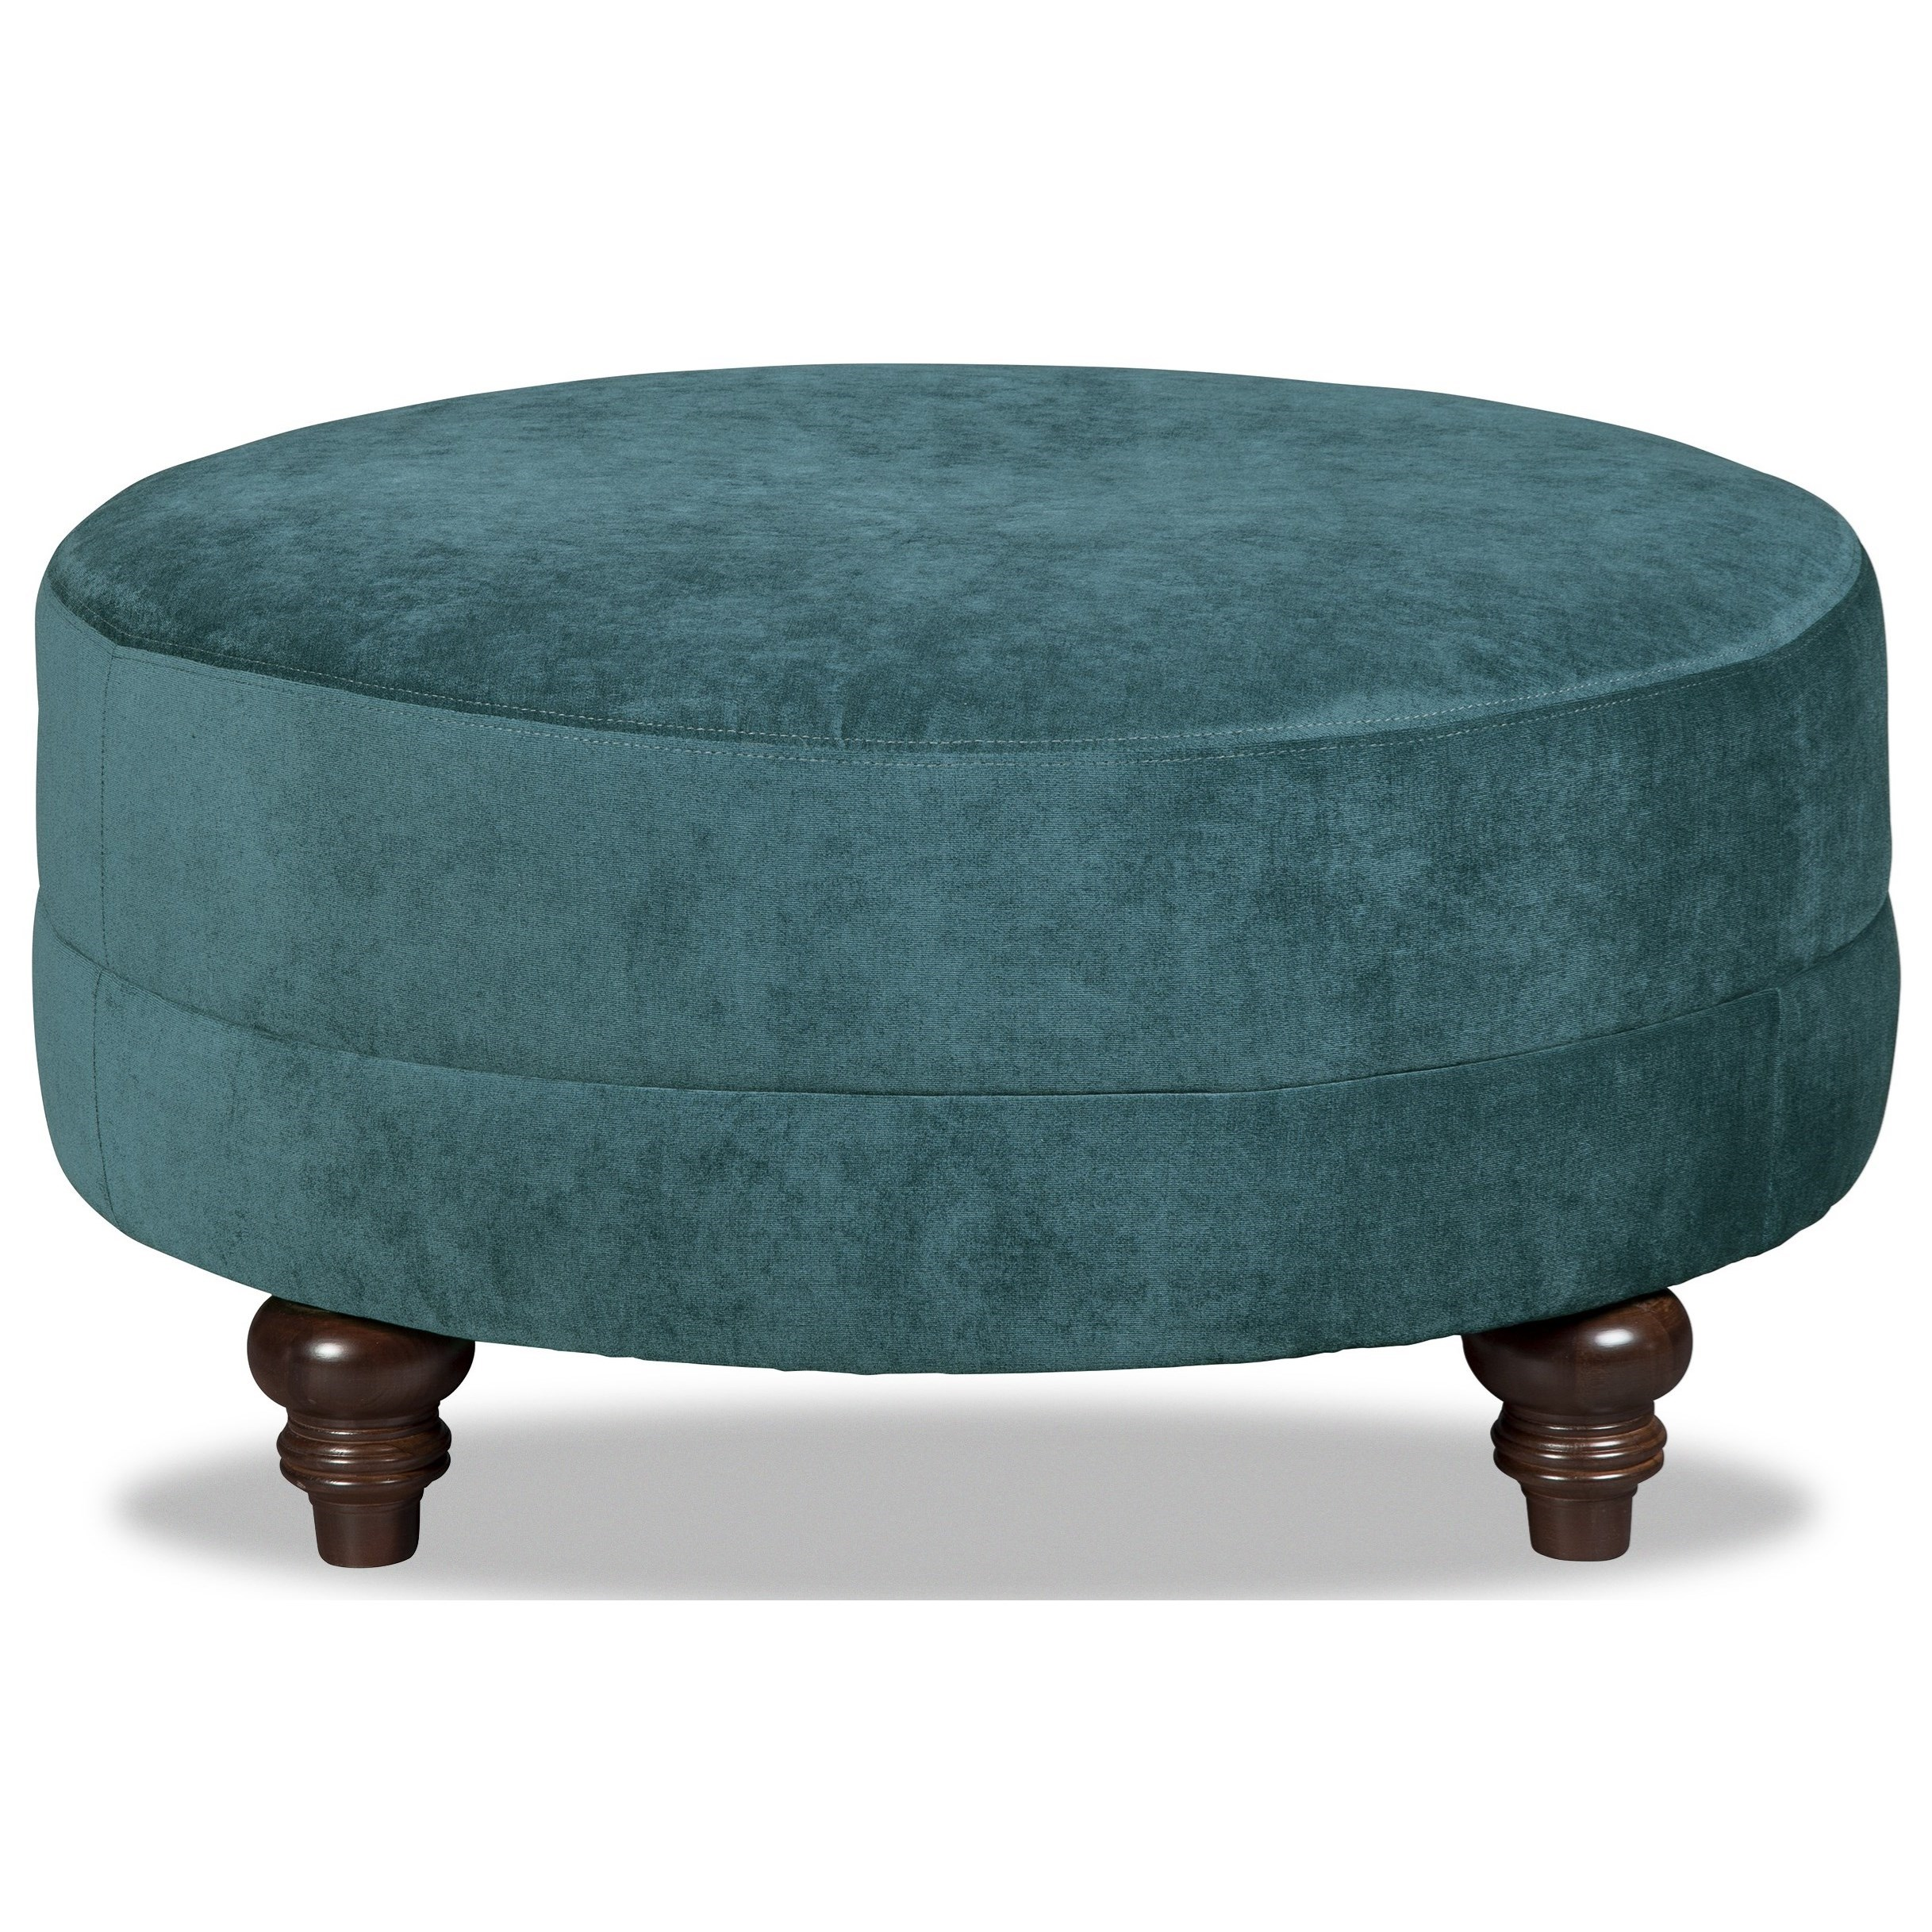 M9 Custom - Design Options Customizable Small Round Cocktail Ottoman by Craftmaster at Baer's Furniture